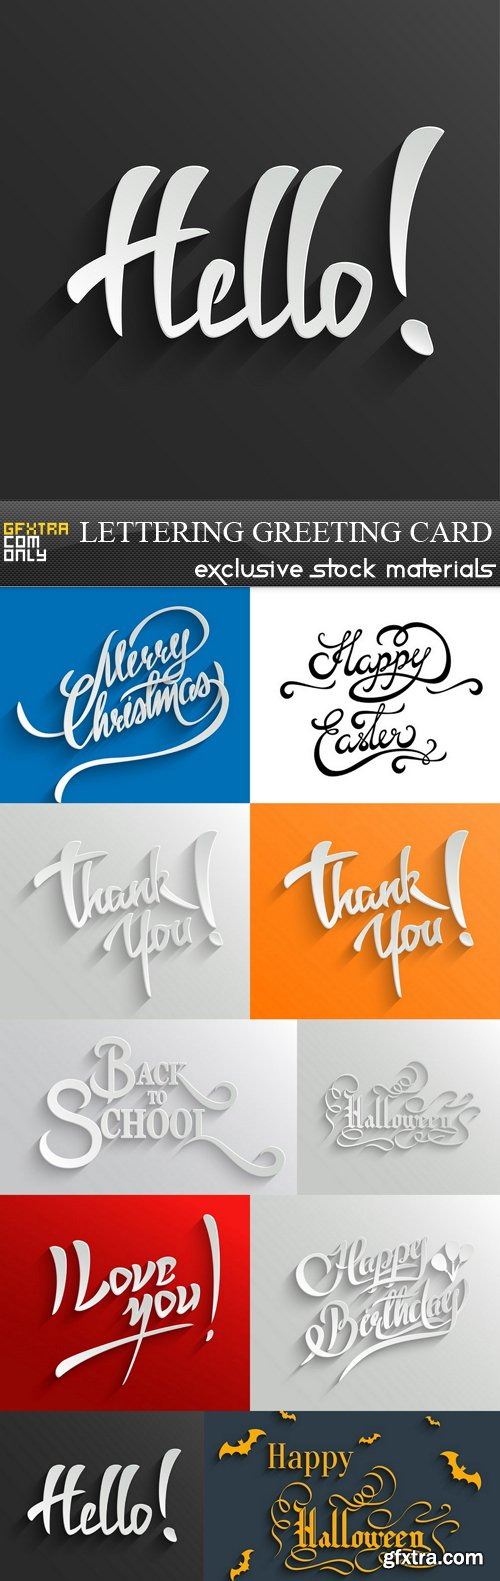 Lettering Greeting Card - 13 EPS